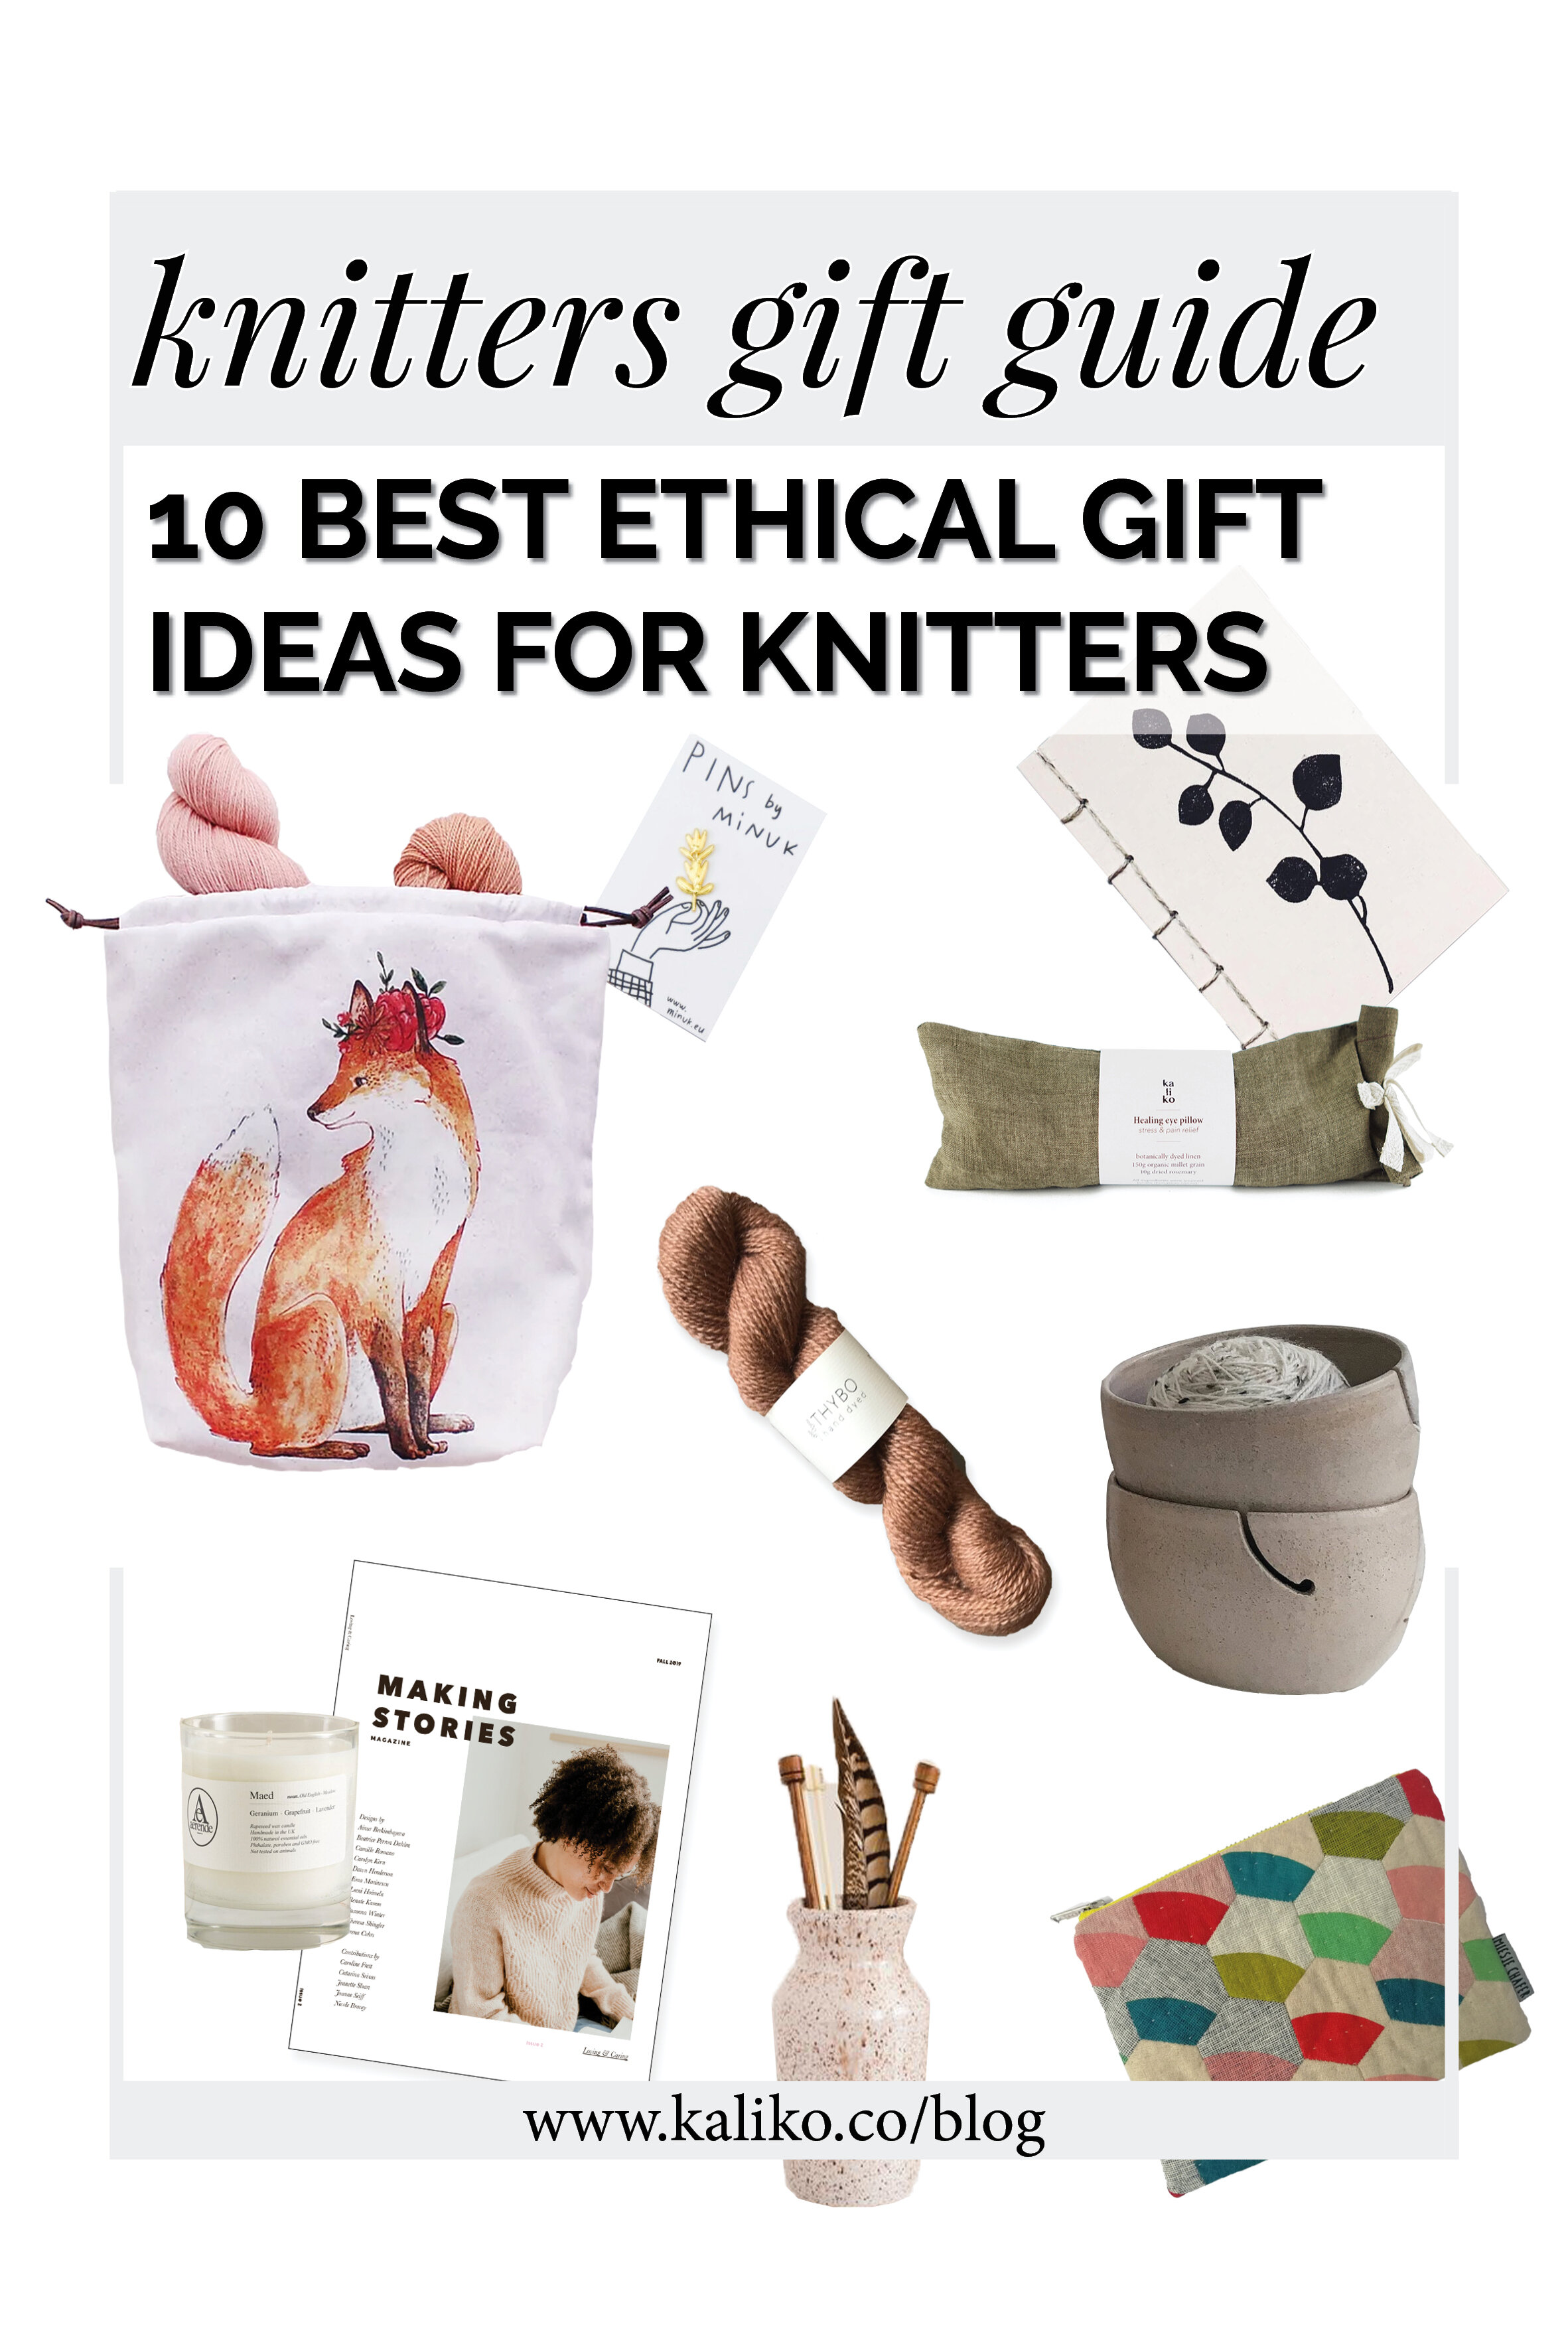 10 best ethical gift ideas for knitters